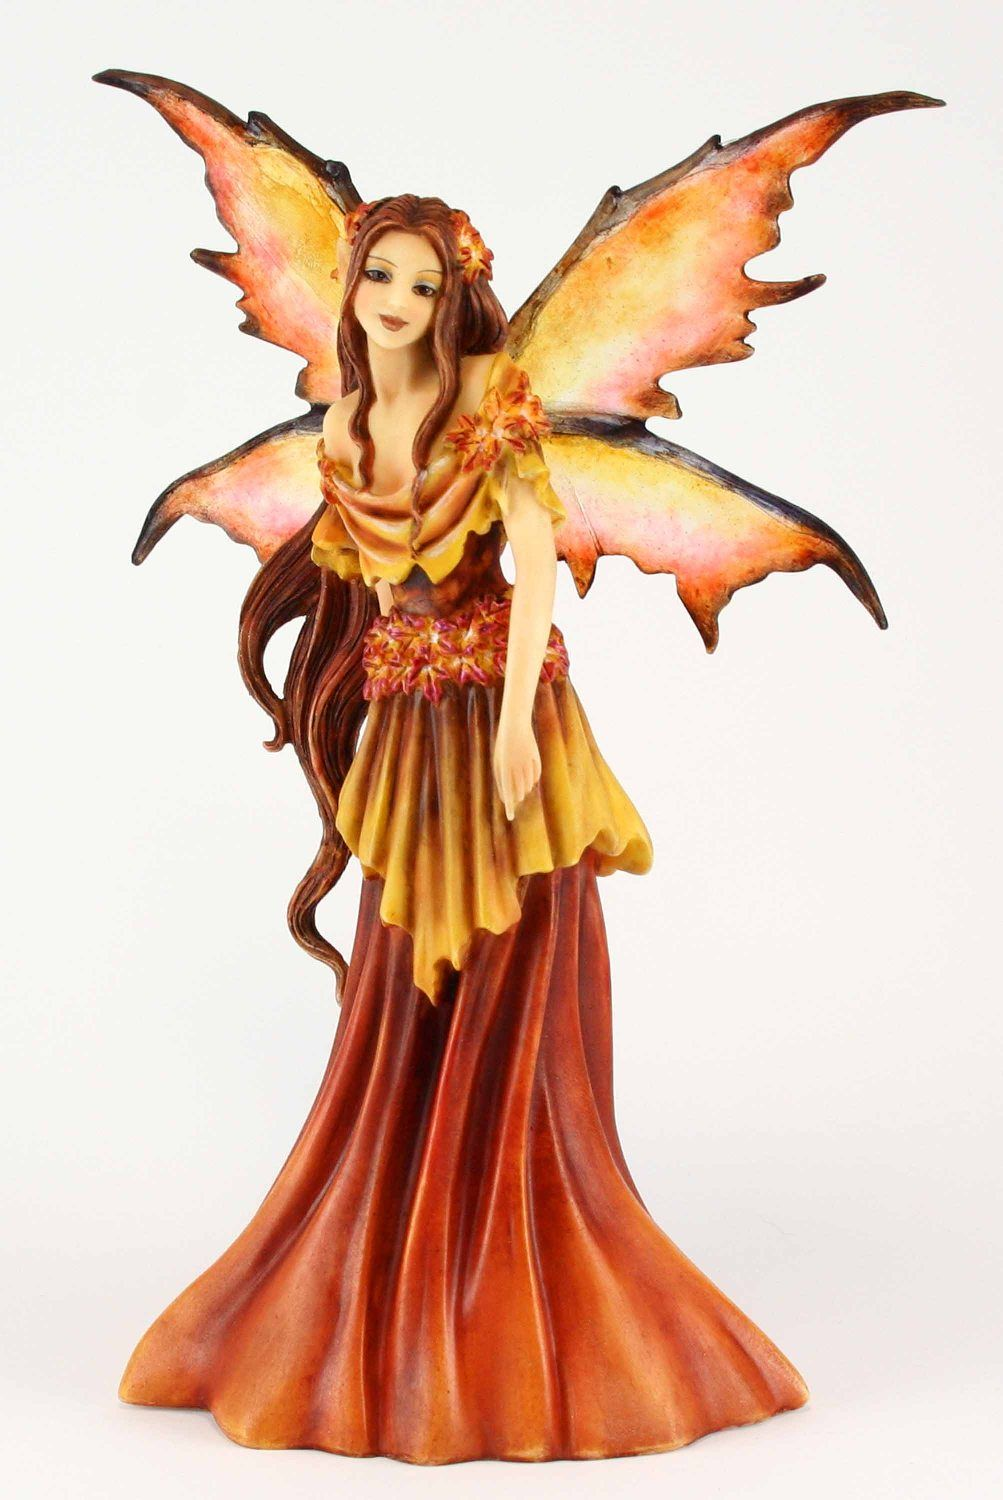 Faerie Statues Autumn Fairy Queen By Amy Brown From Fairysite Fairy Garden